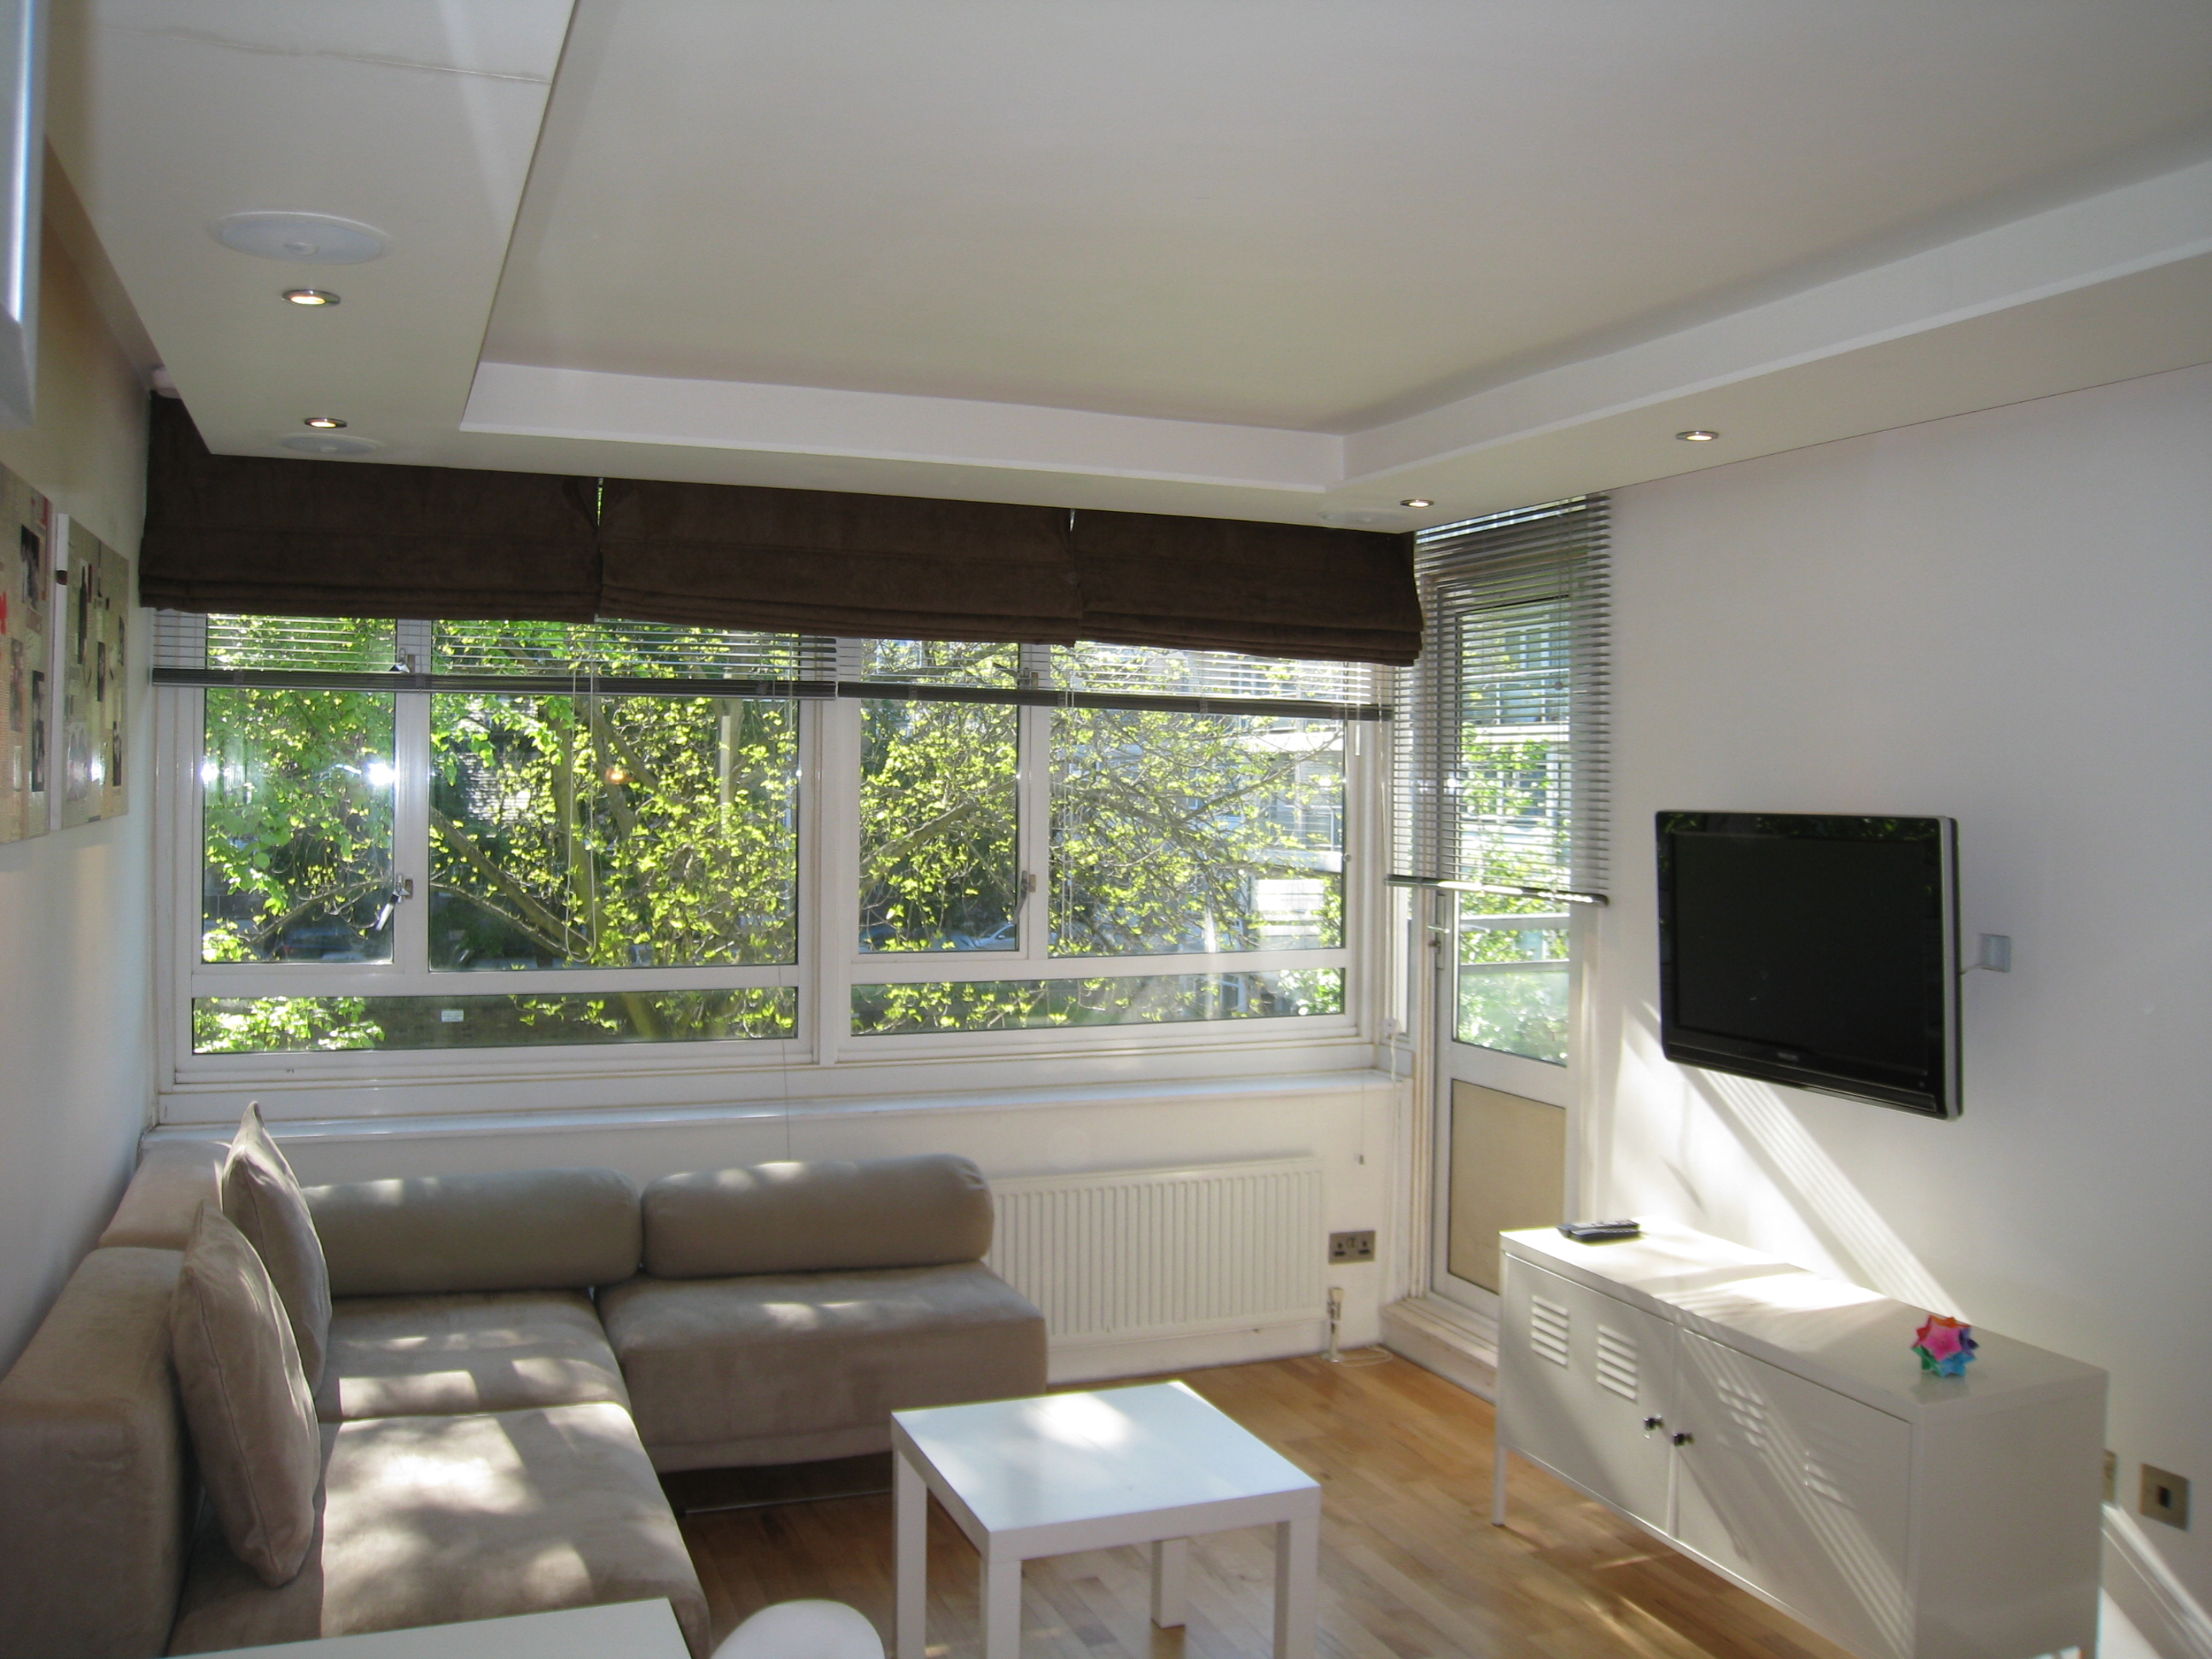 1 bedroom flats apartments to rent on claverton street london